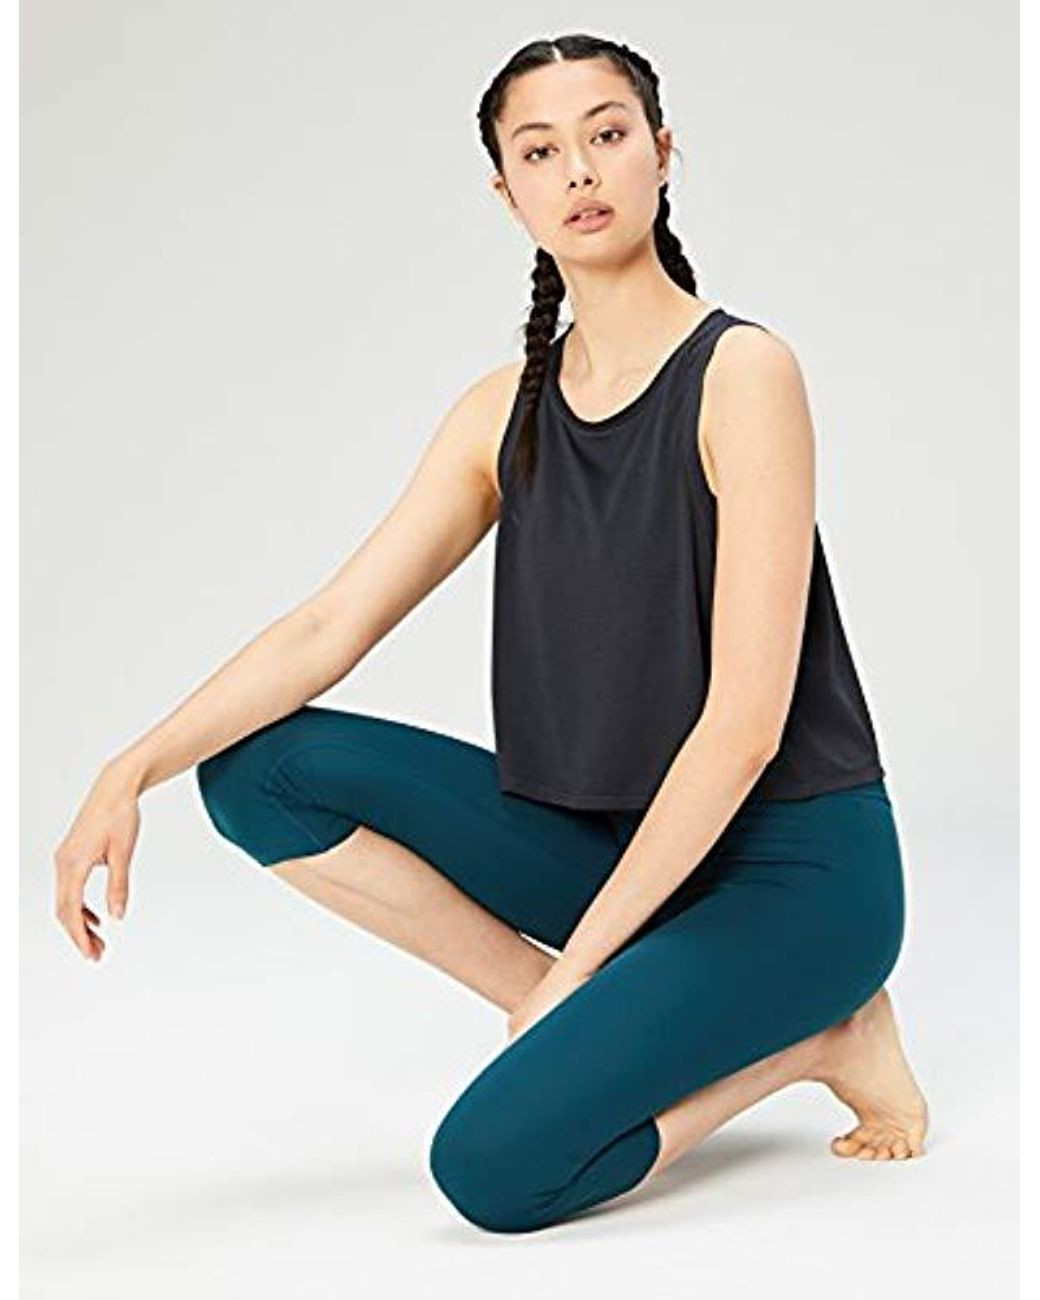 XS-3X Core 10 Womens Icon Series Lace-Up /& Go High Waist Yoga Legging 24